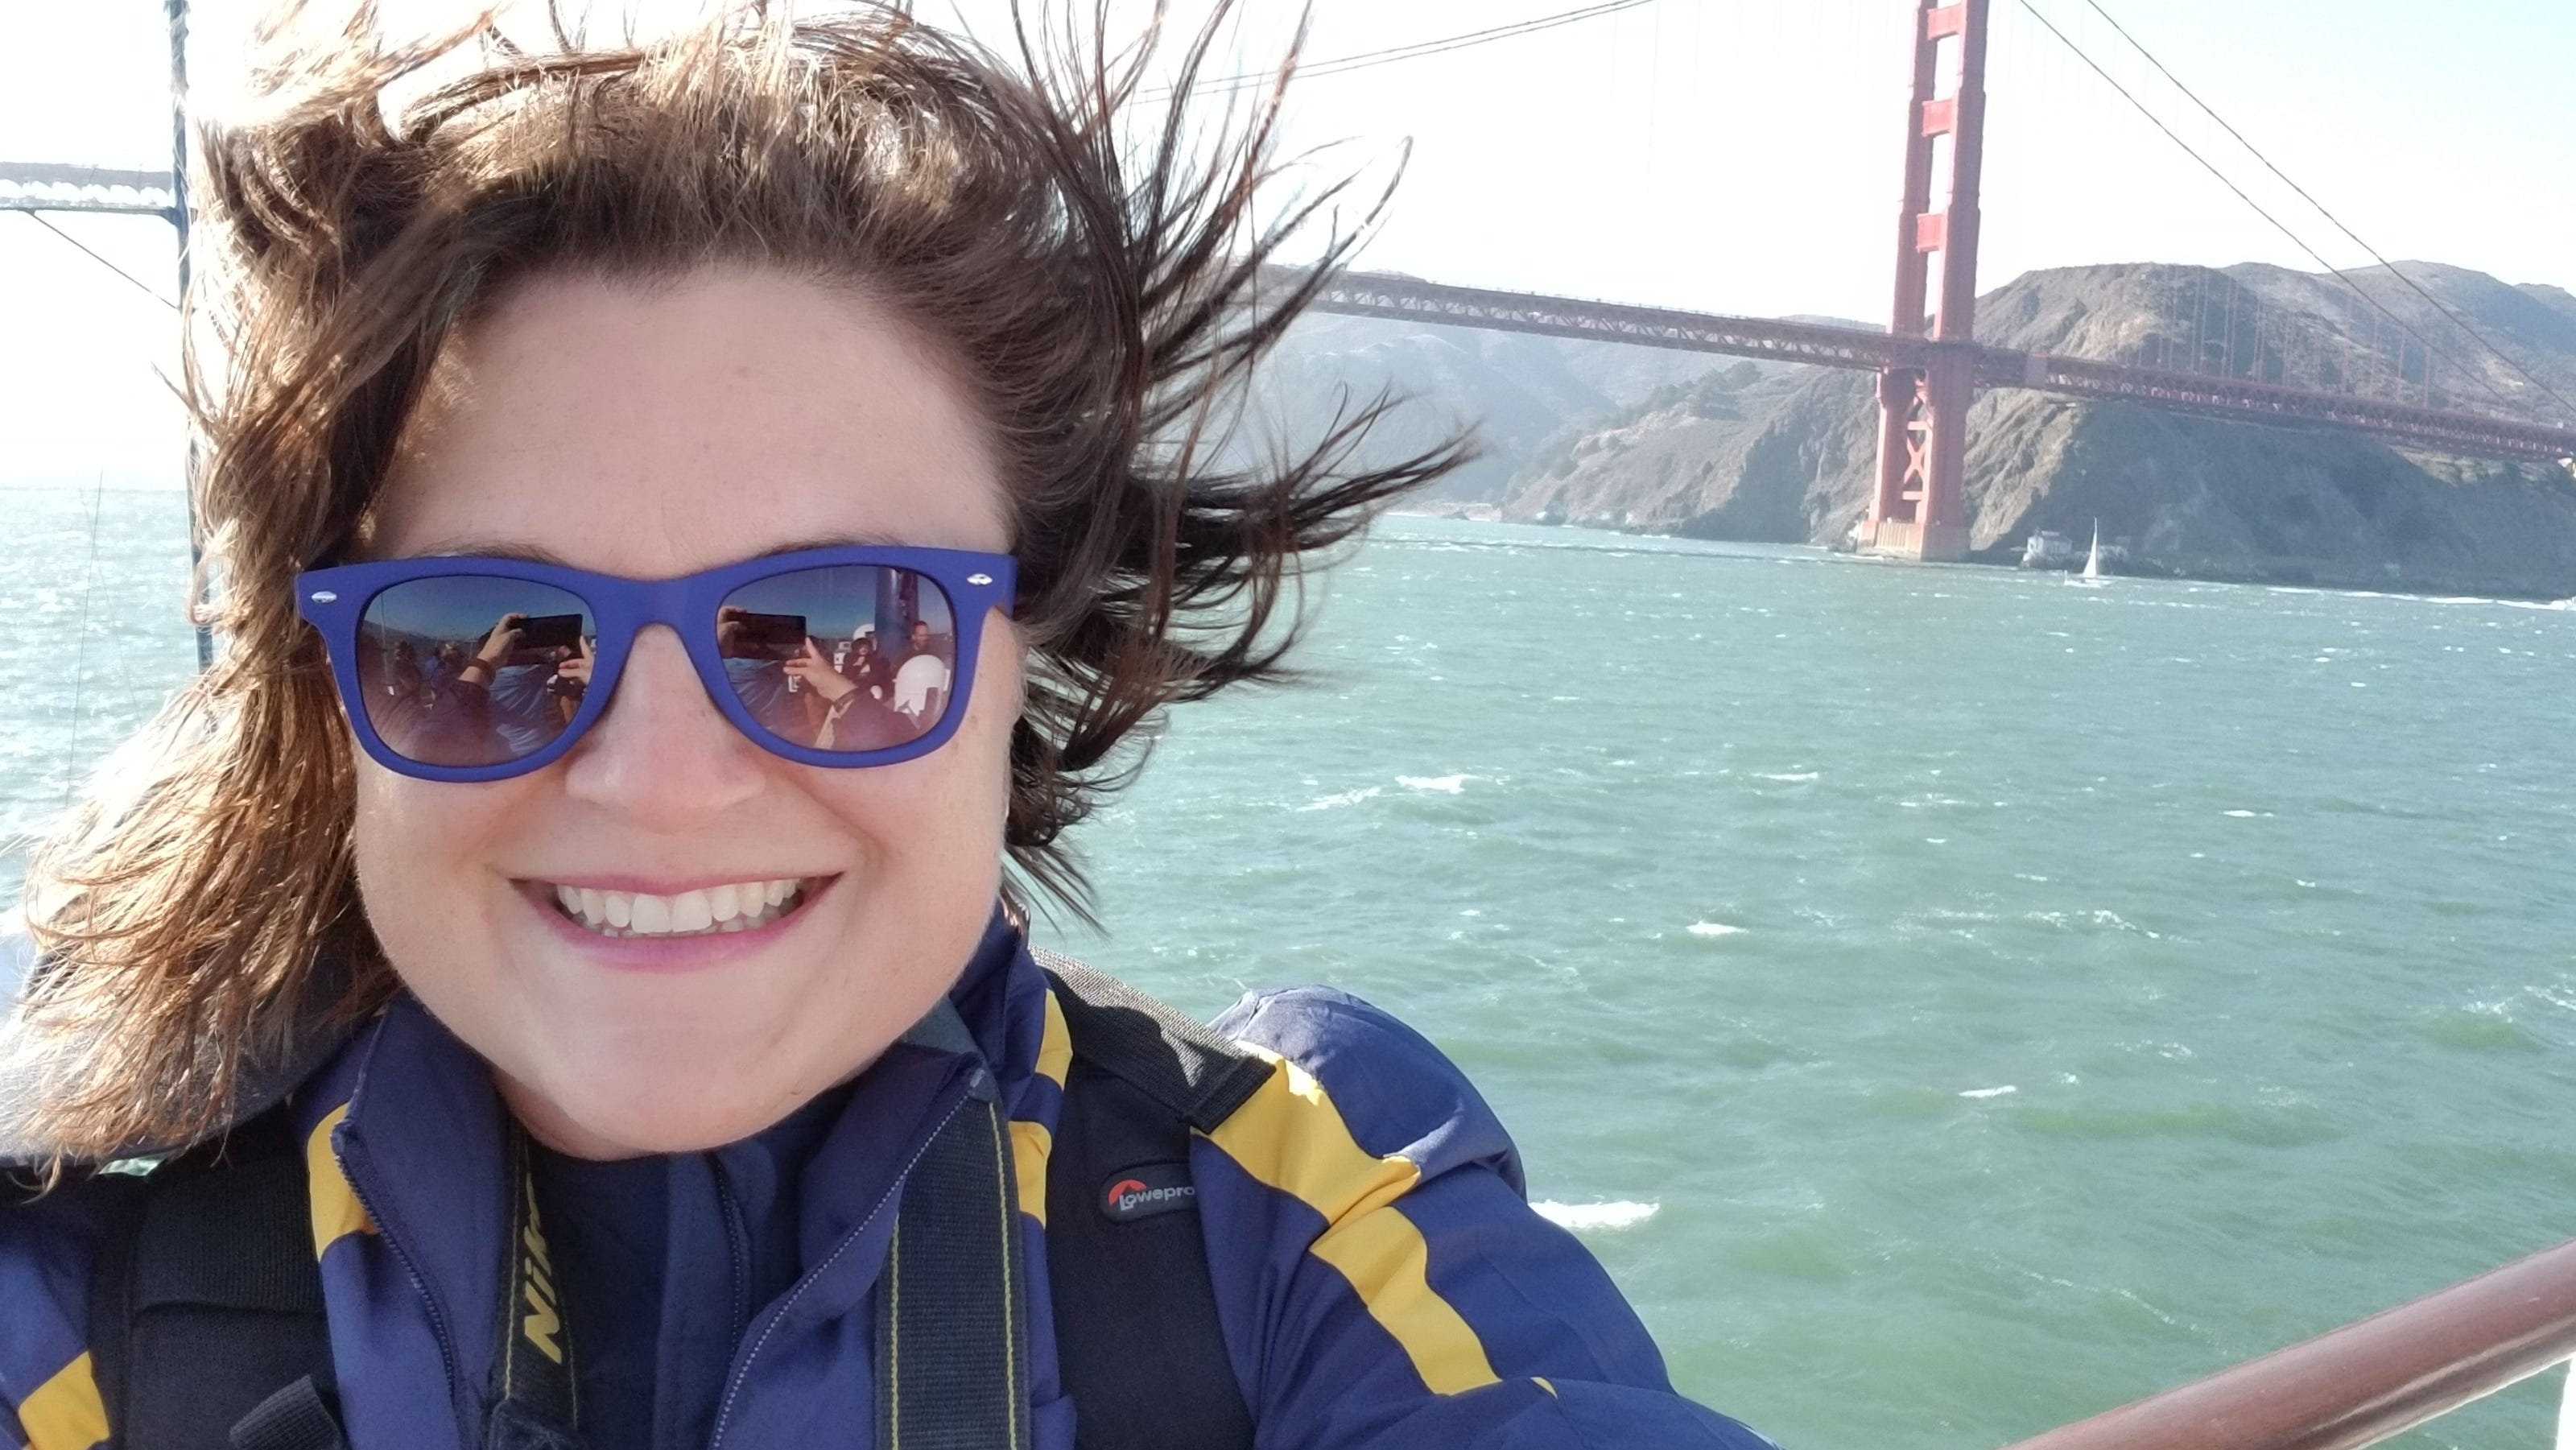 Nautilus Sets Sail From San Francisco To Explore California Coast